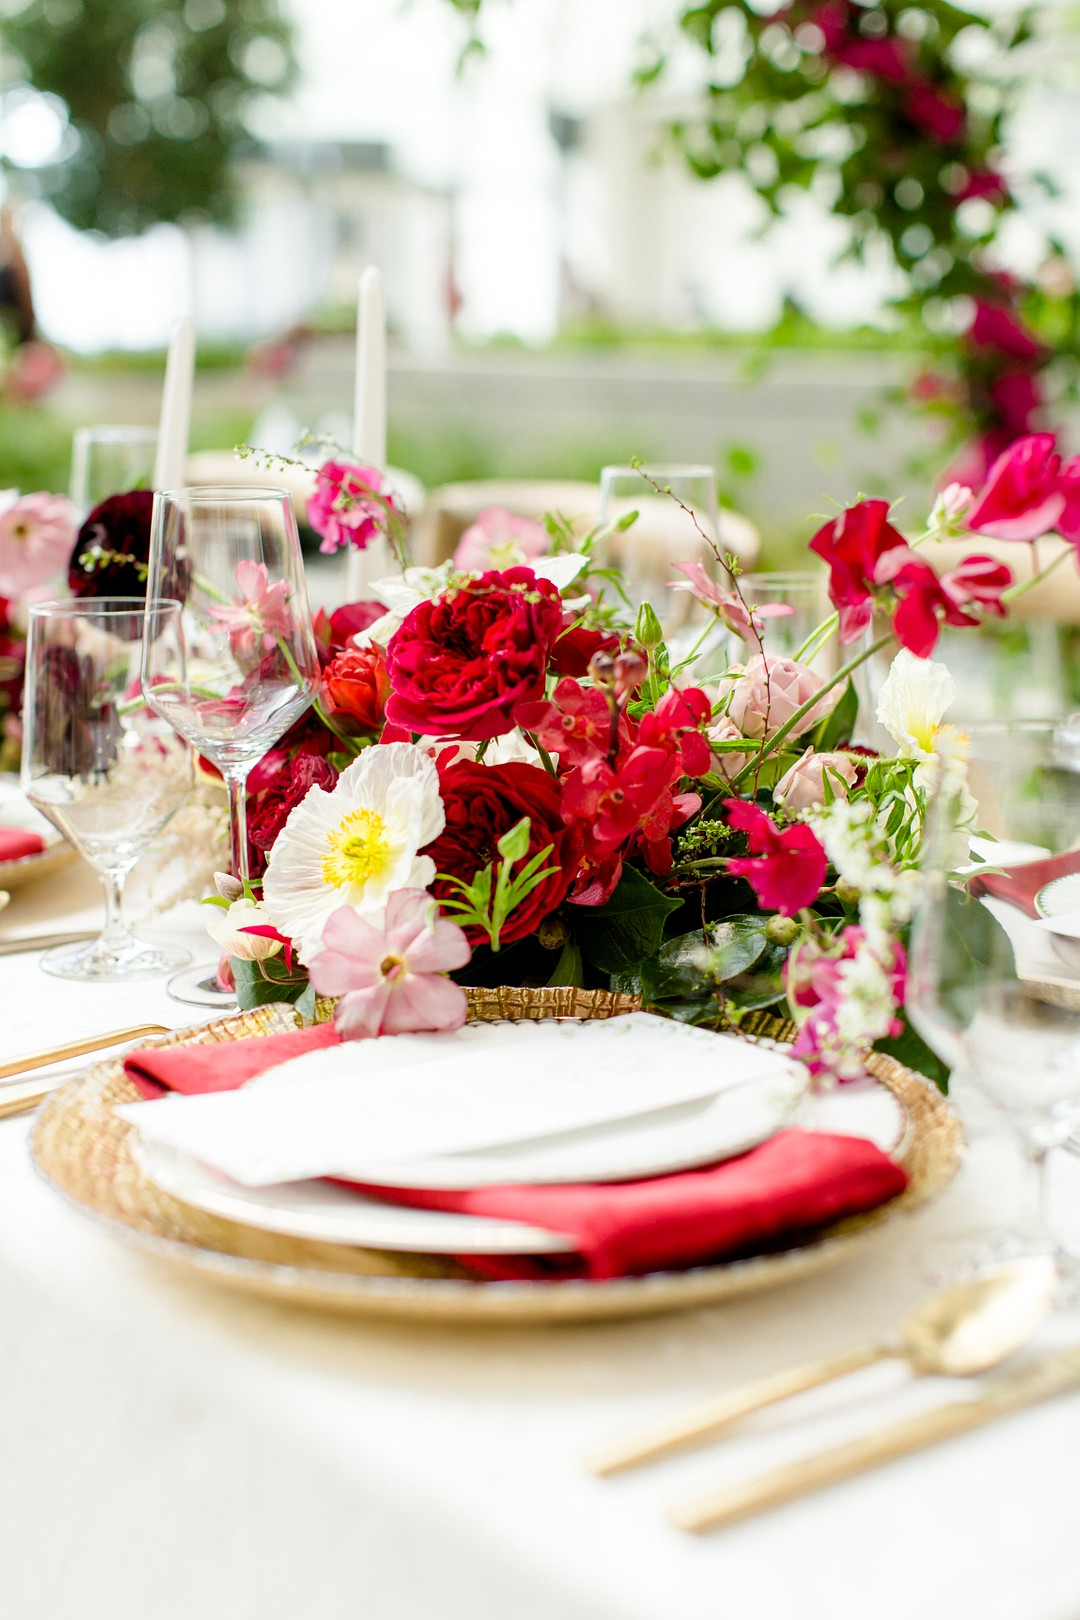 red wedding centerpiece with garden roses